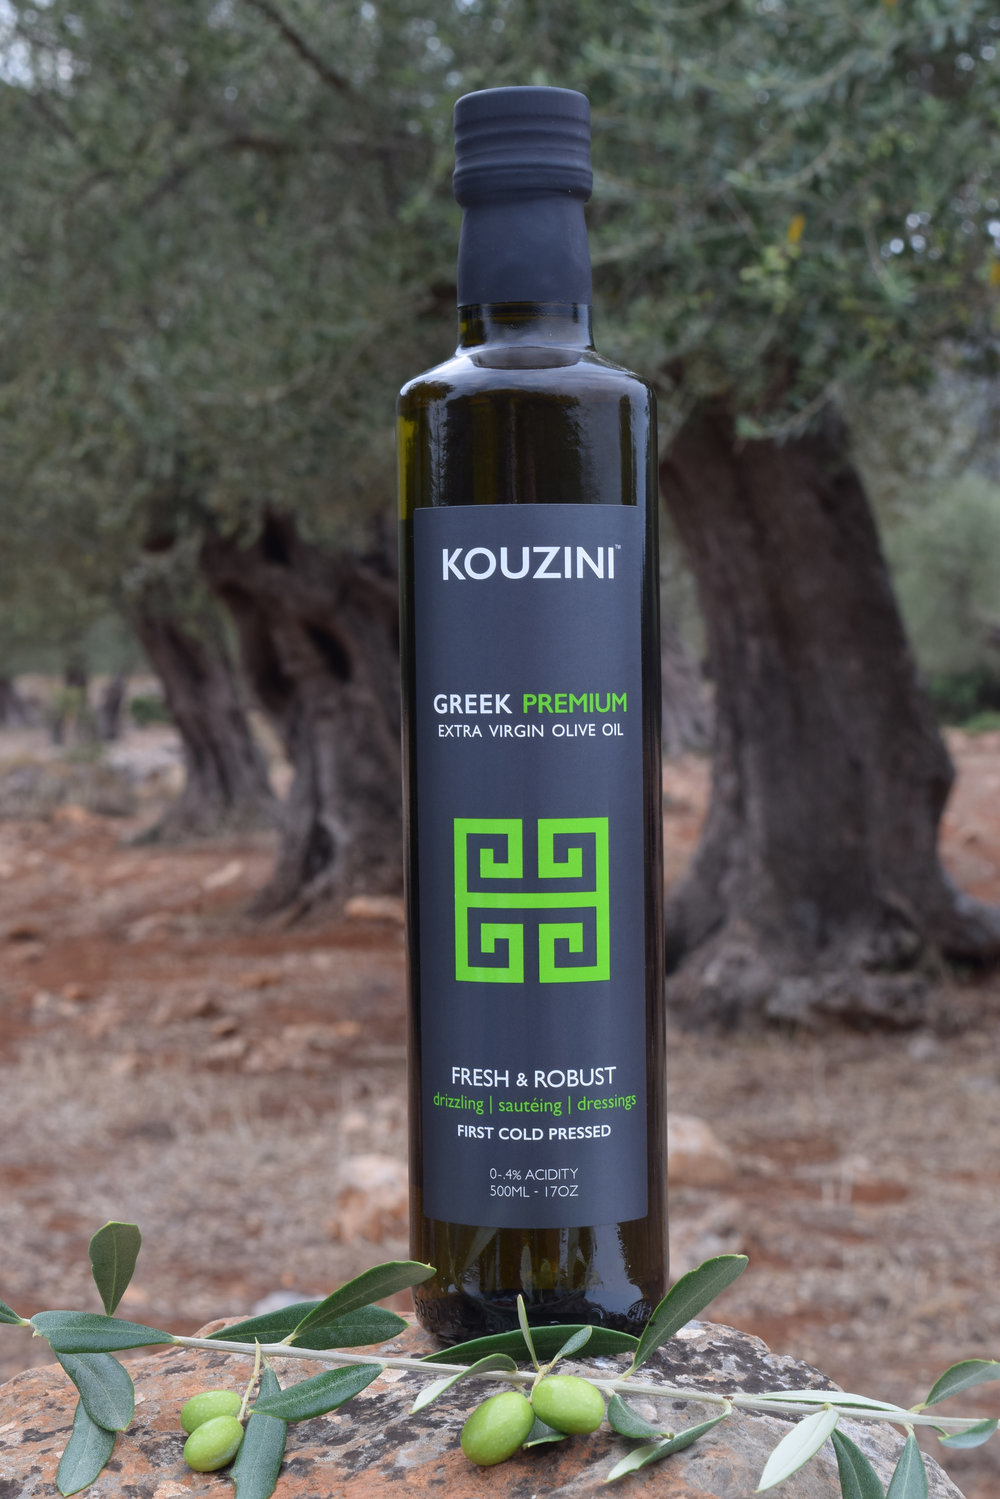 Ultra Premium Greek extra virgin olive oil.